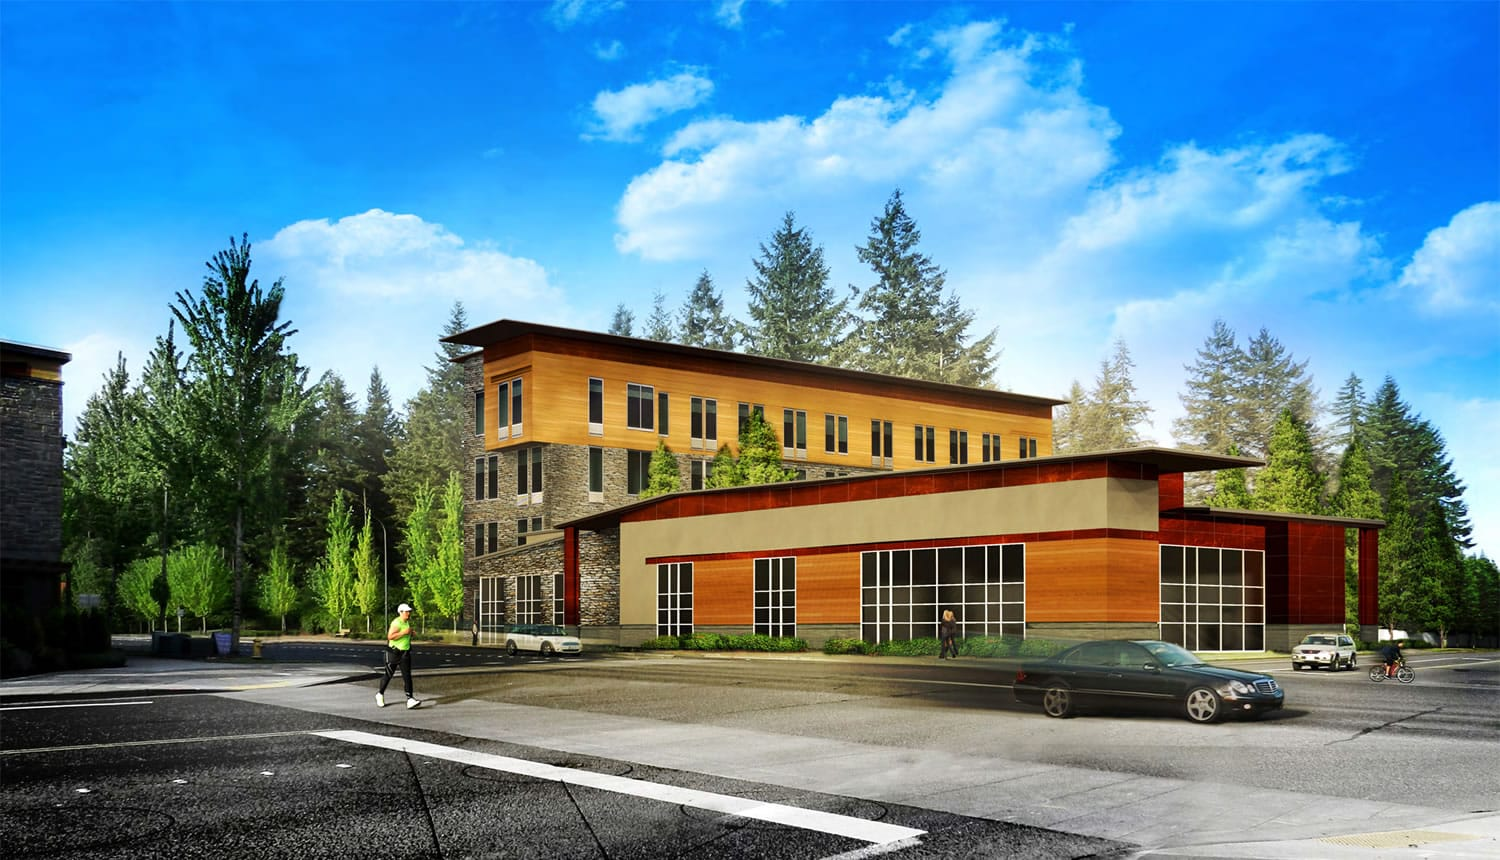 Construction is expected to wrap up this summer on a new Candlewood Suites hotel on 192nd Avenue in east Vancouver.